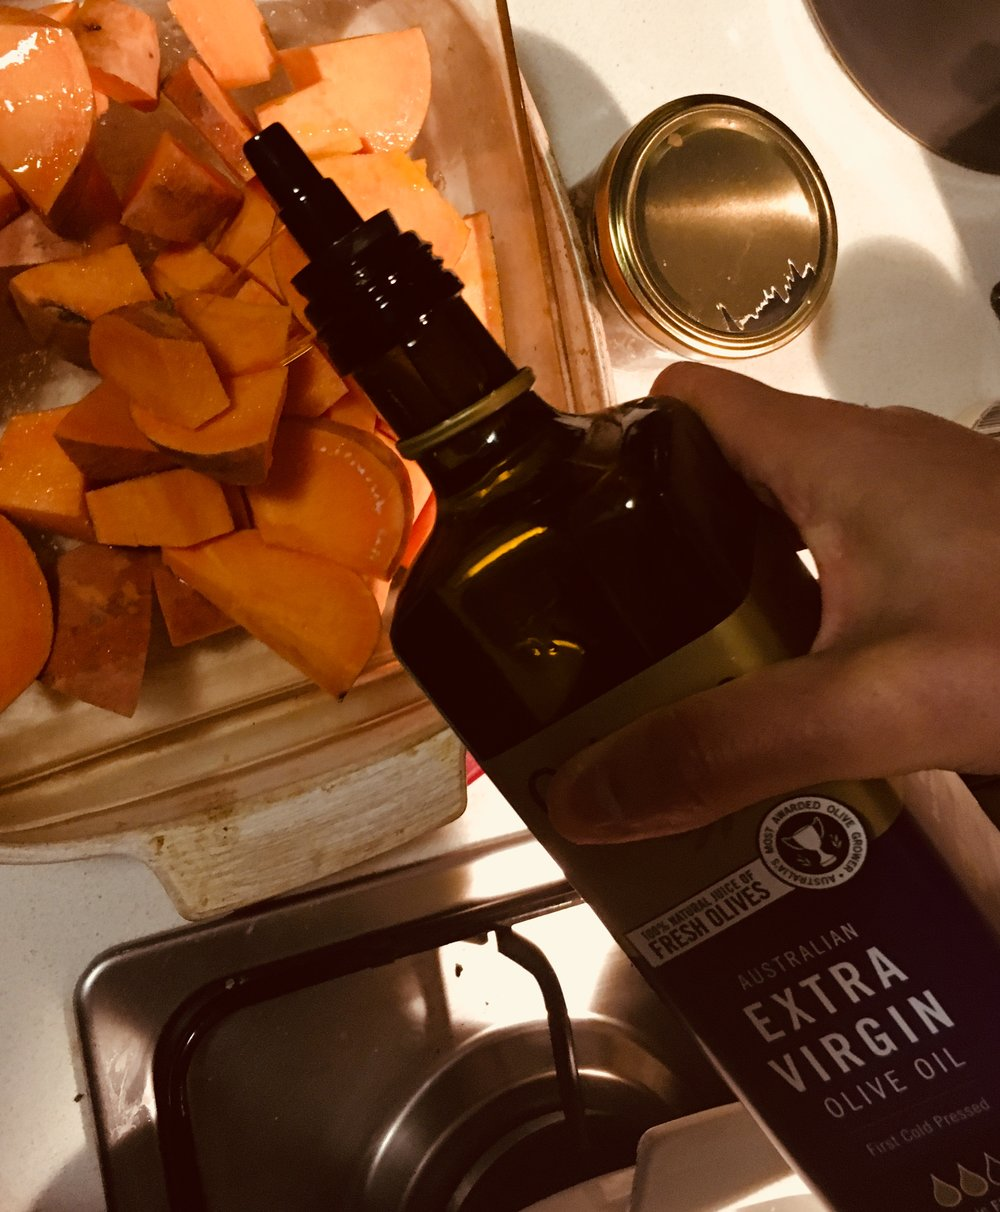 Oil & salt it! - Extra virgin olive oil instead of processed vegetable oils like canola oil is much better for you. Get your hands dirty and rub the sweet potato well with salt and oil.